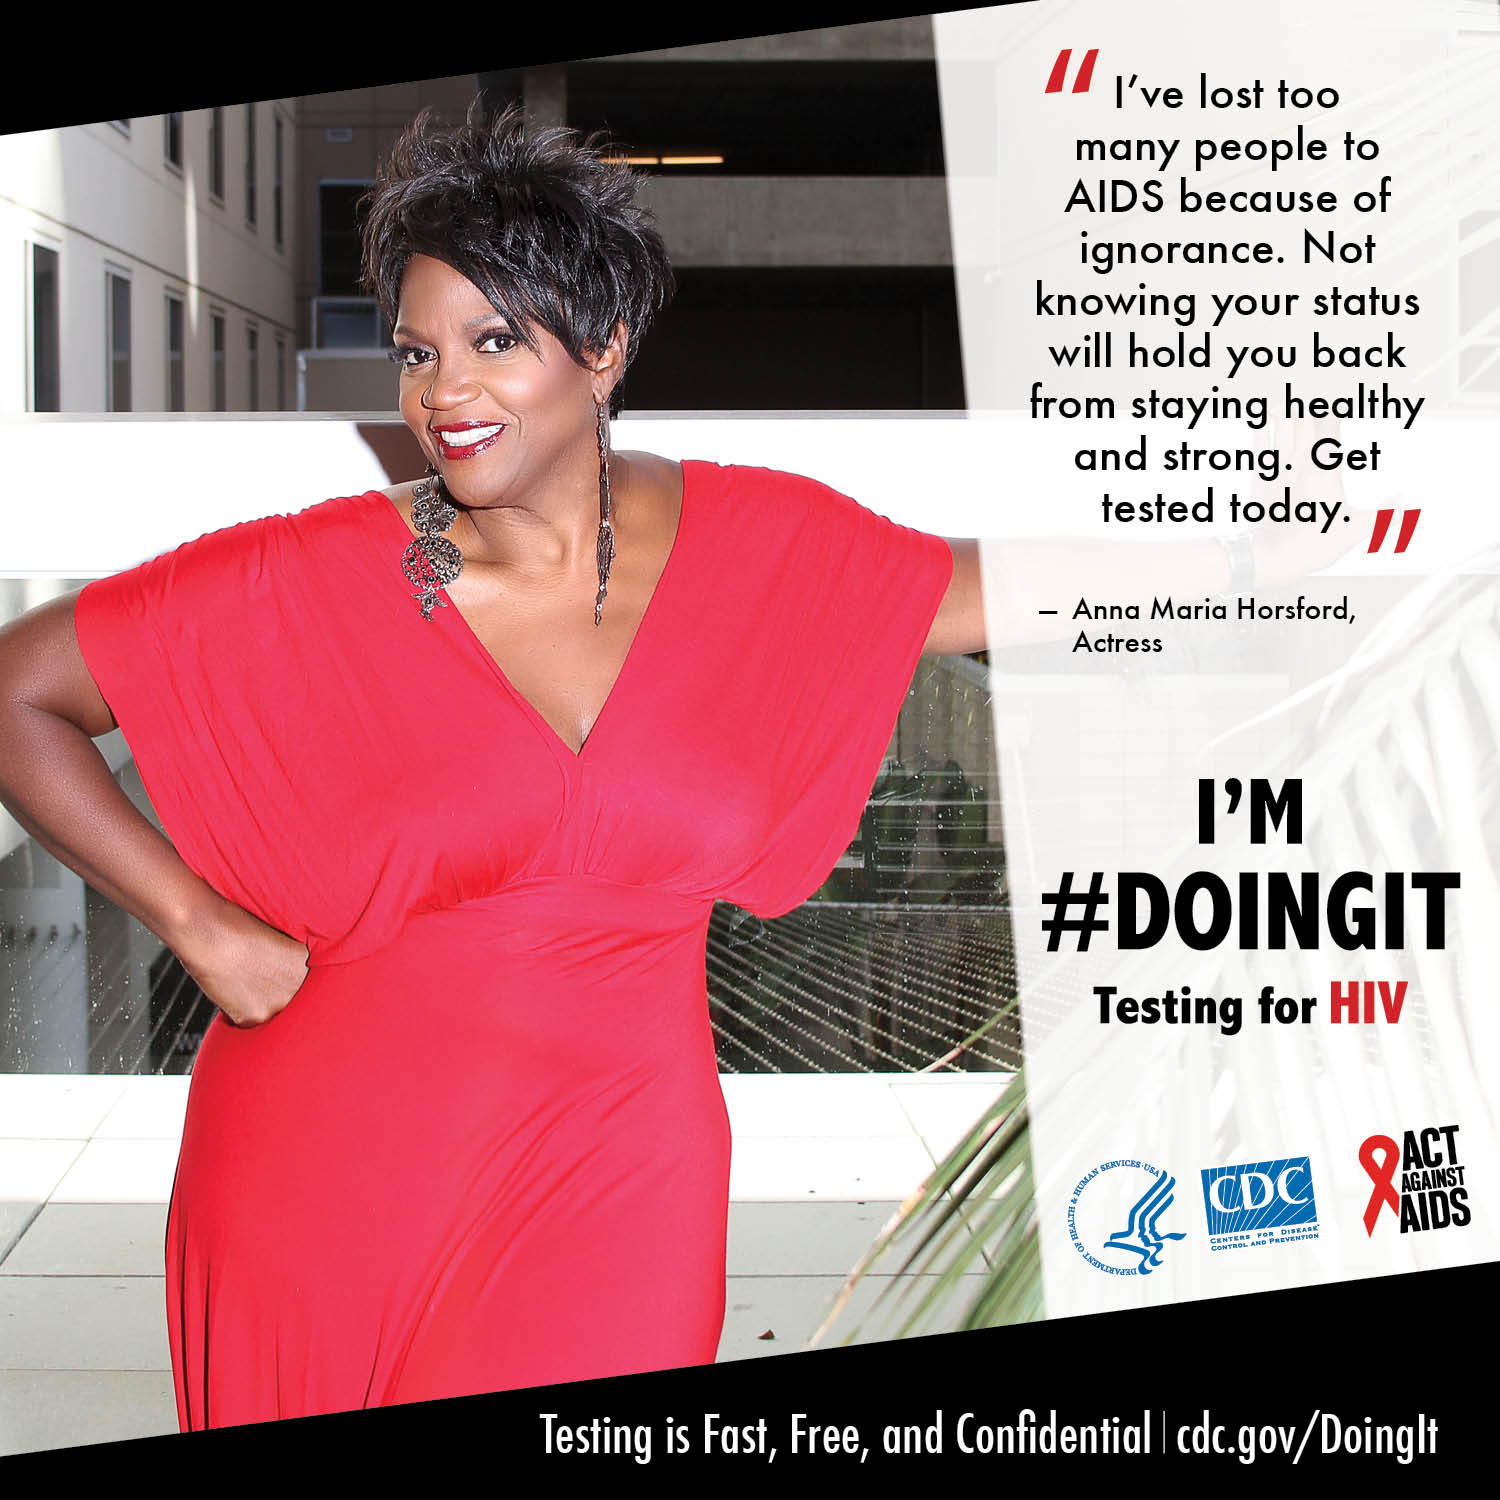 "Anna Maria Horsford, an African-American actress, in a red dress stating why she believes getting tested is important. ""I've lost too many people to AIDS because of ignorance. Not knowing your status will hold you back from staying healthy and strong. Get tested today."""